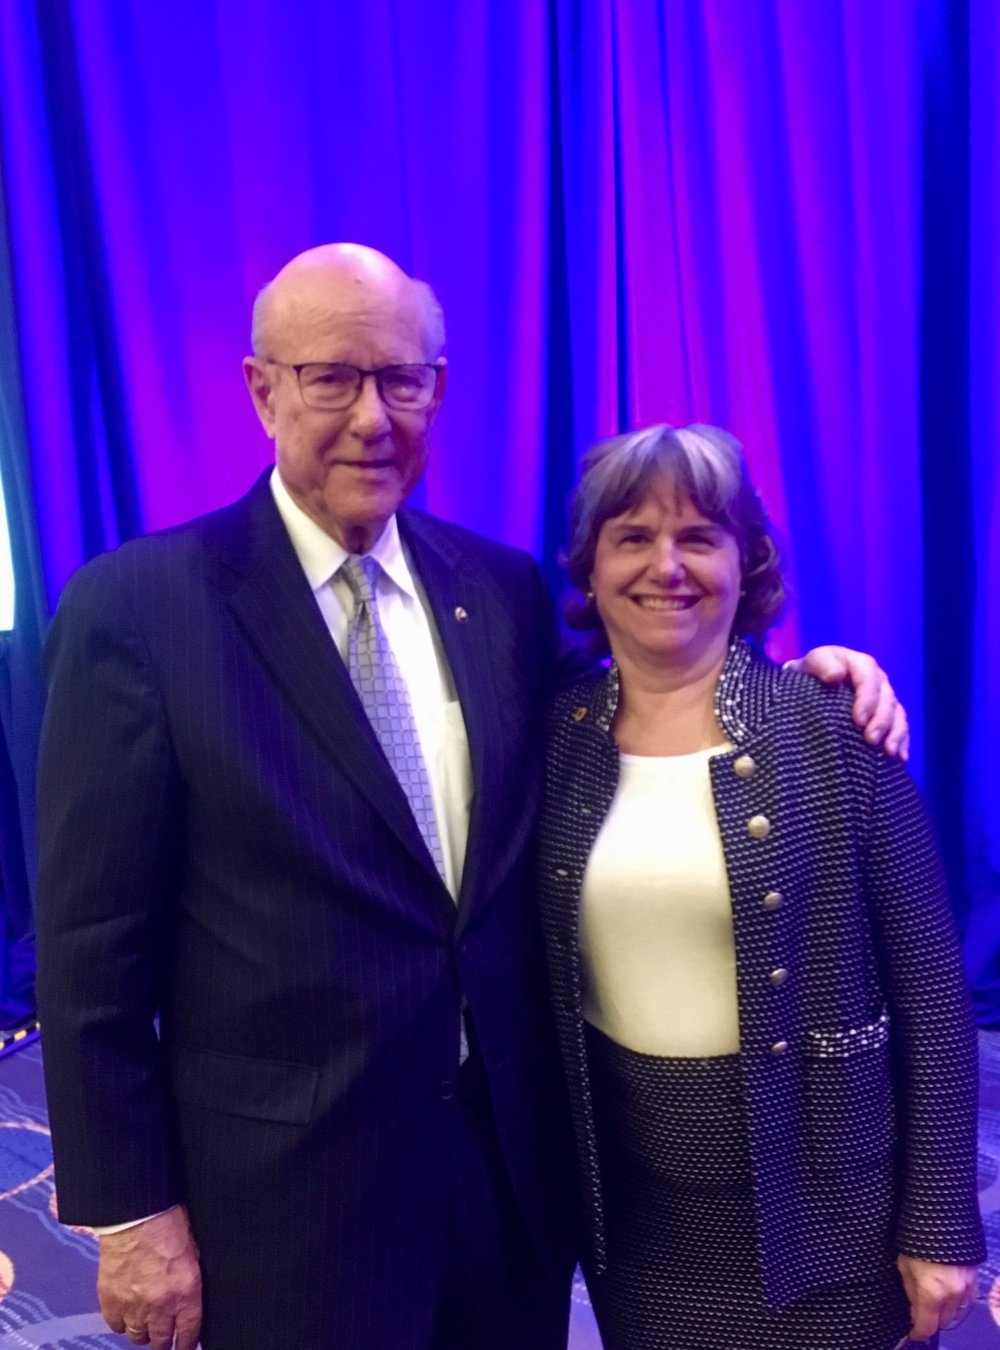 With Senator Pat Roberts as he received the Gene White Award at the Global Child Nutrition Foundation Event